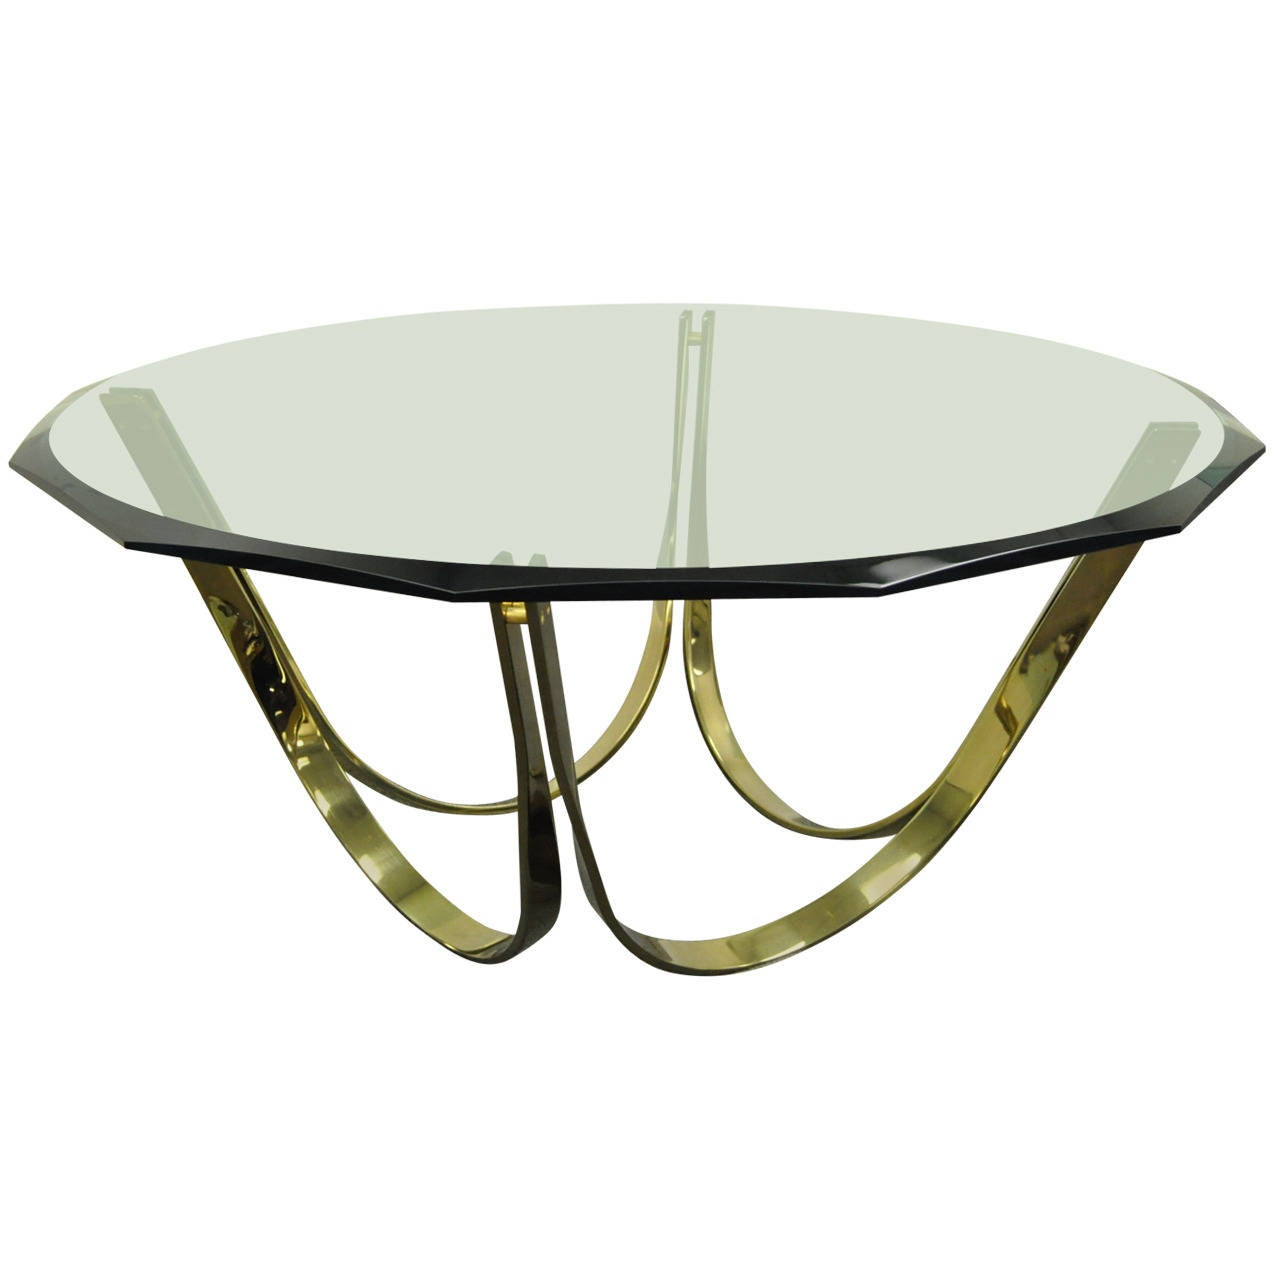 Trimark Brass Plated Steel U0026 Glass Coffee Table After Roger Sprunger For  Dunbar For Sale